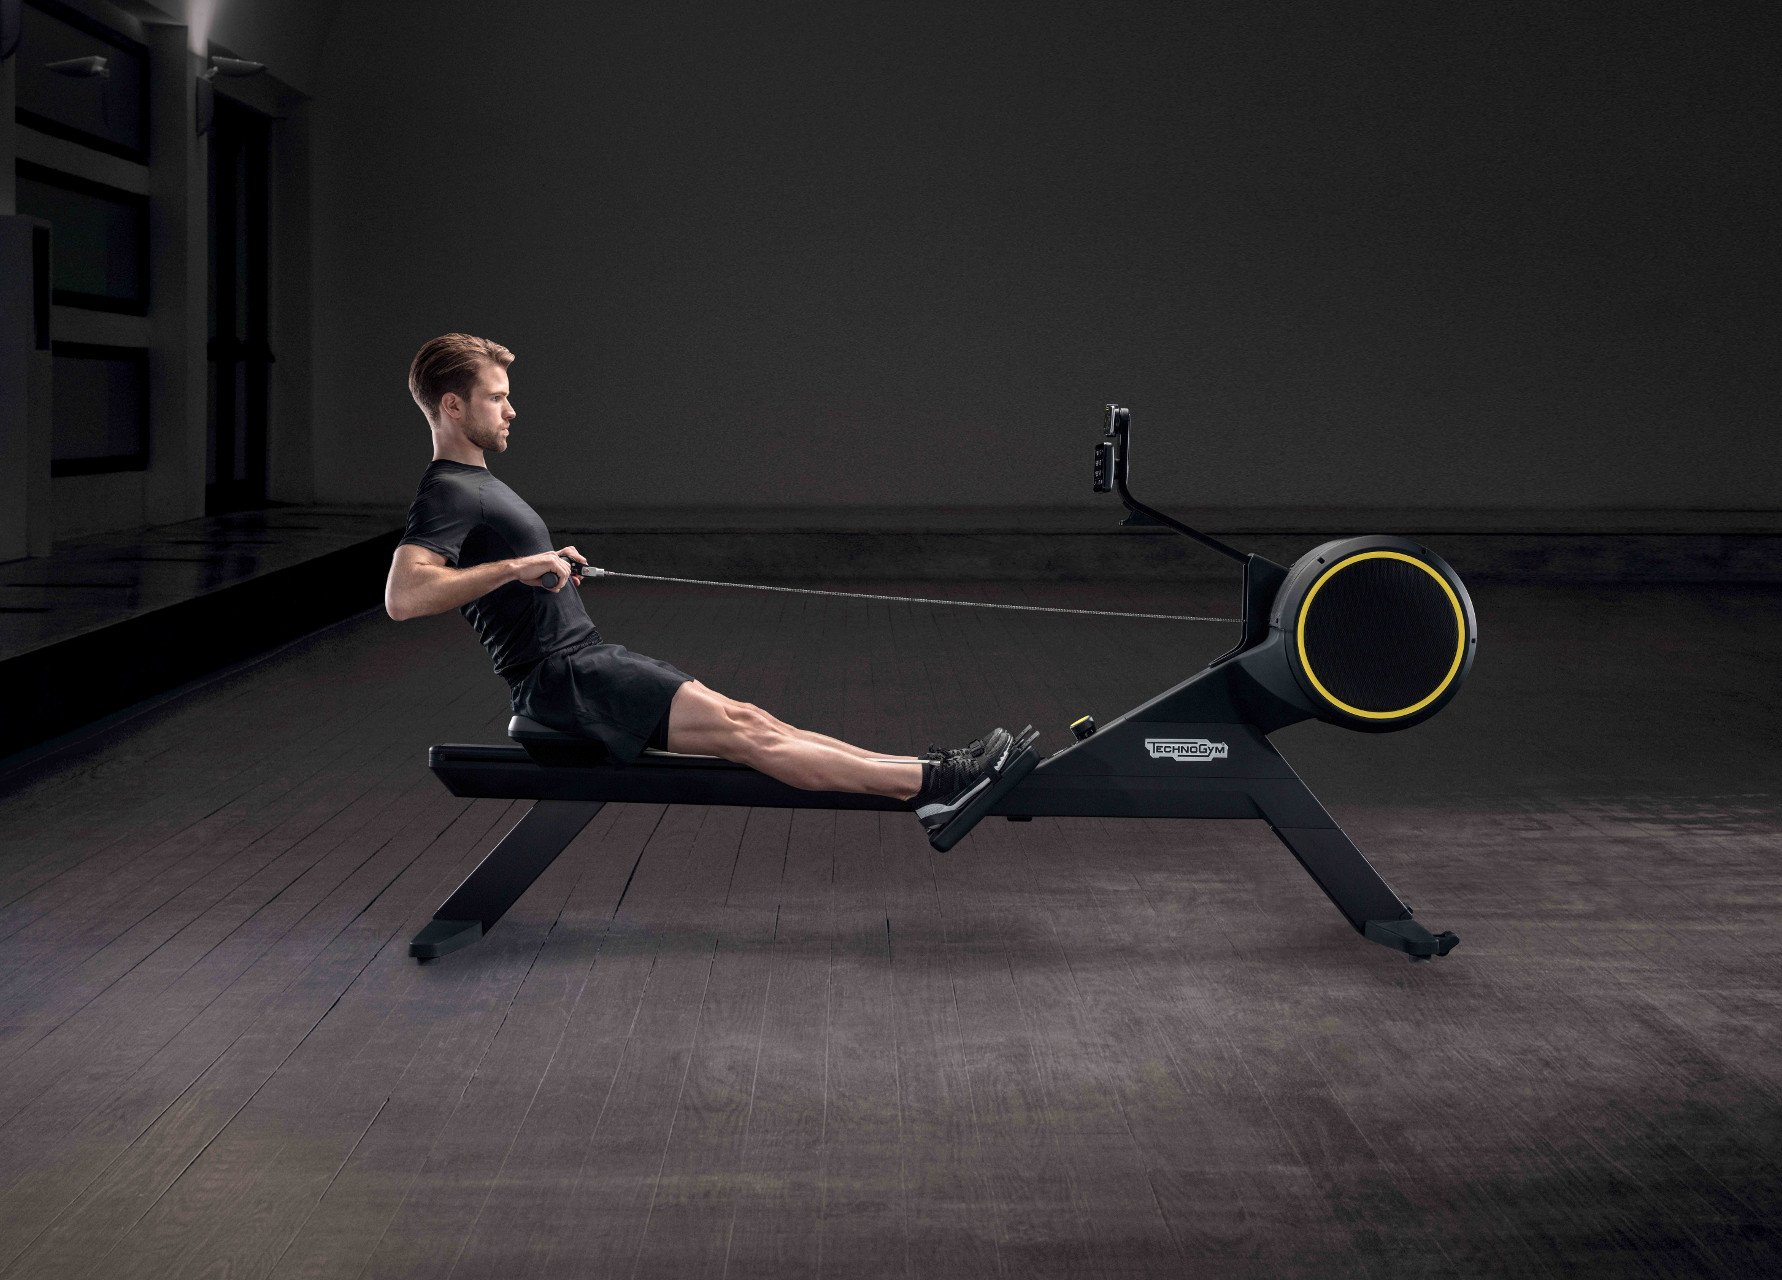 At Ihrsa 2017 Technogym Launches Skillrow